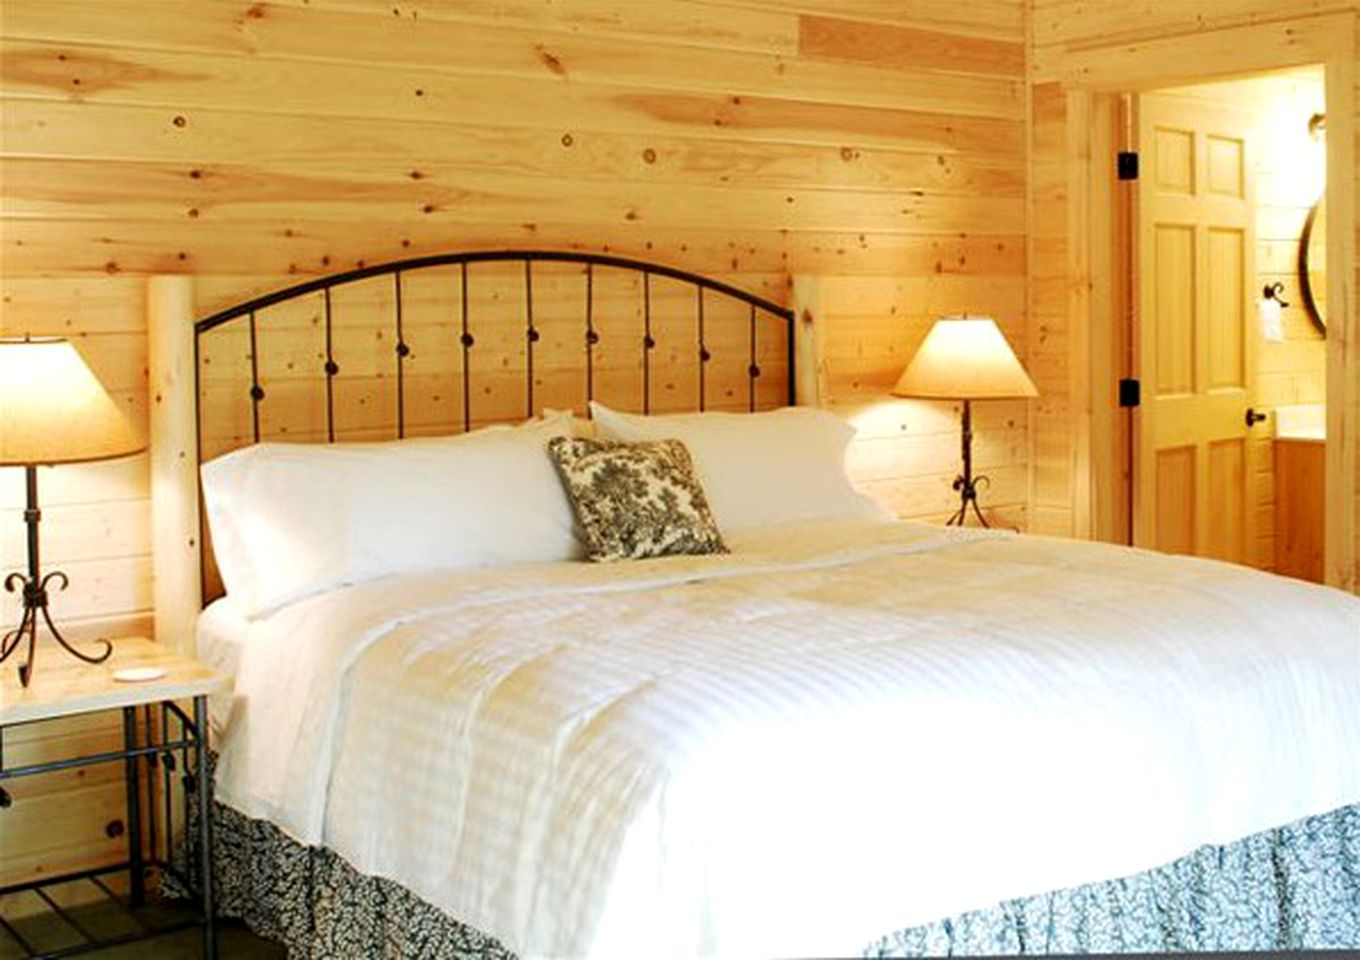 Nature Lodges (Carrabassett Valley, Maine, United States)